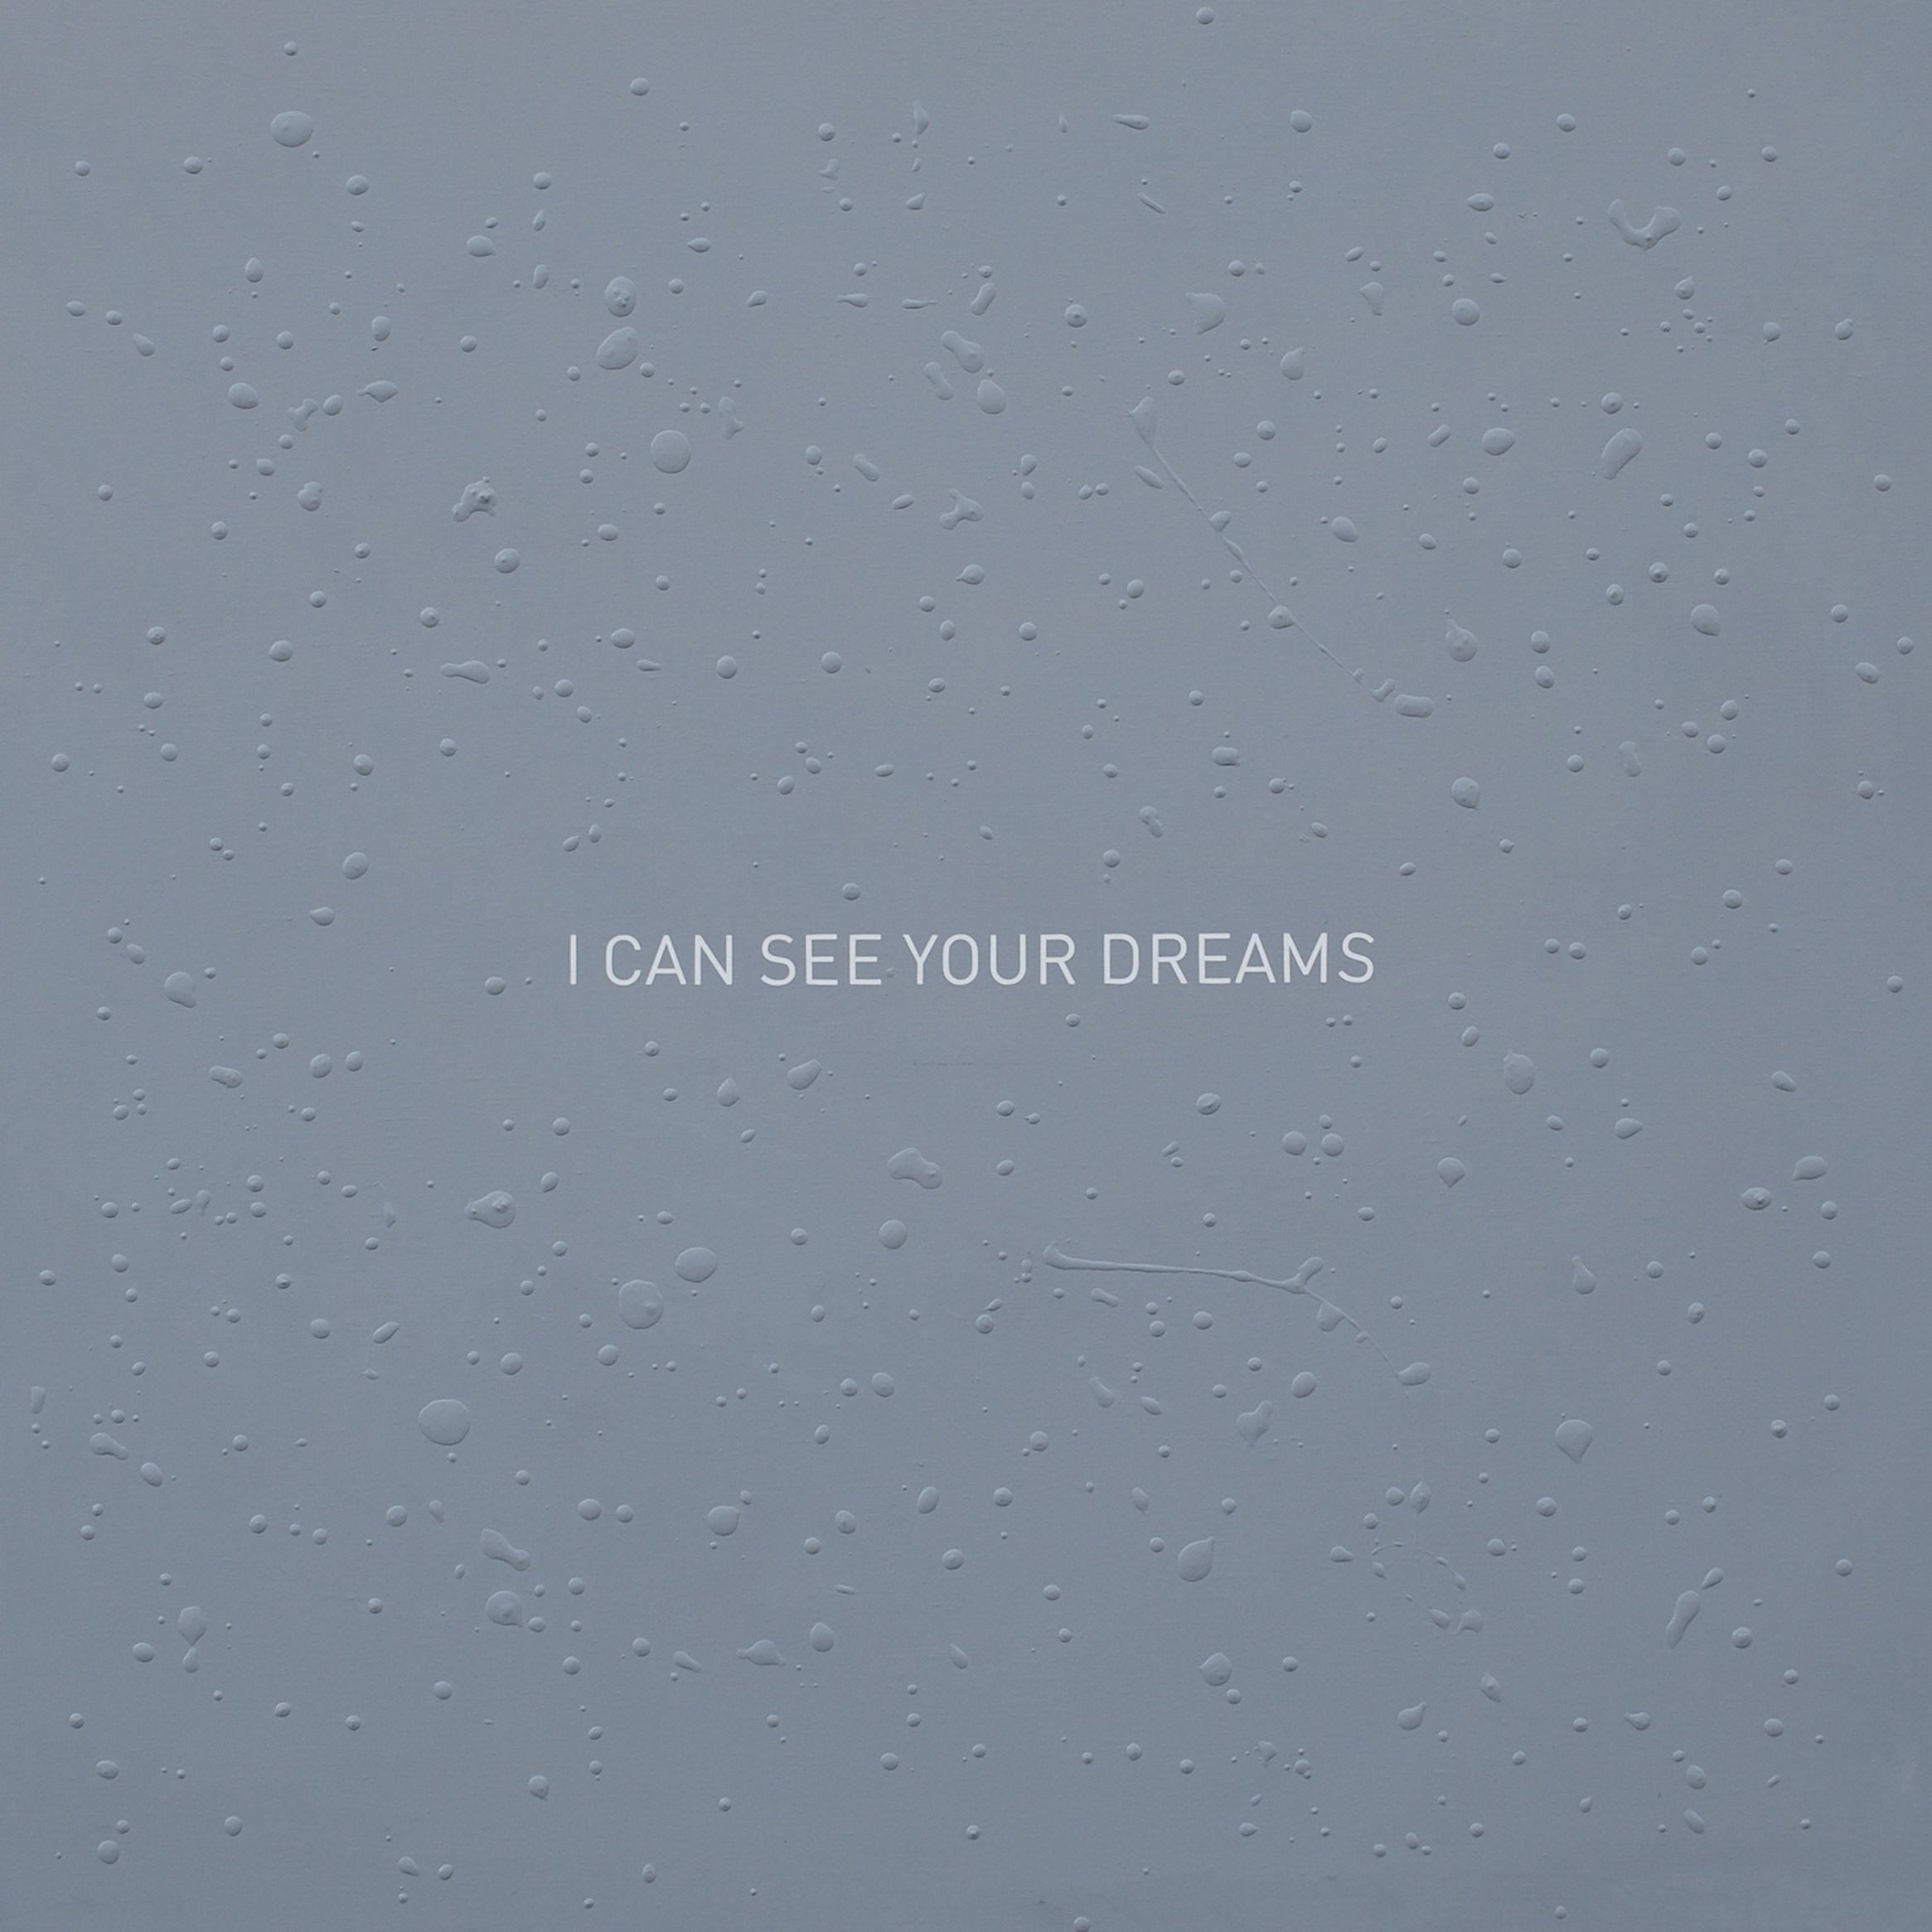 I Can See Your Dreams, Pintura Tela Preto e Branco original por André Lemos Pinto